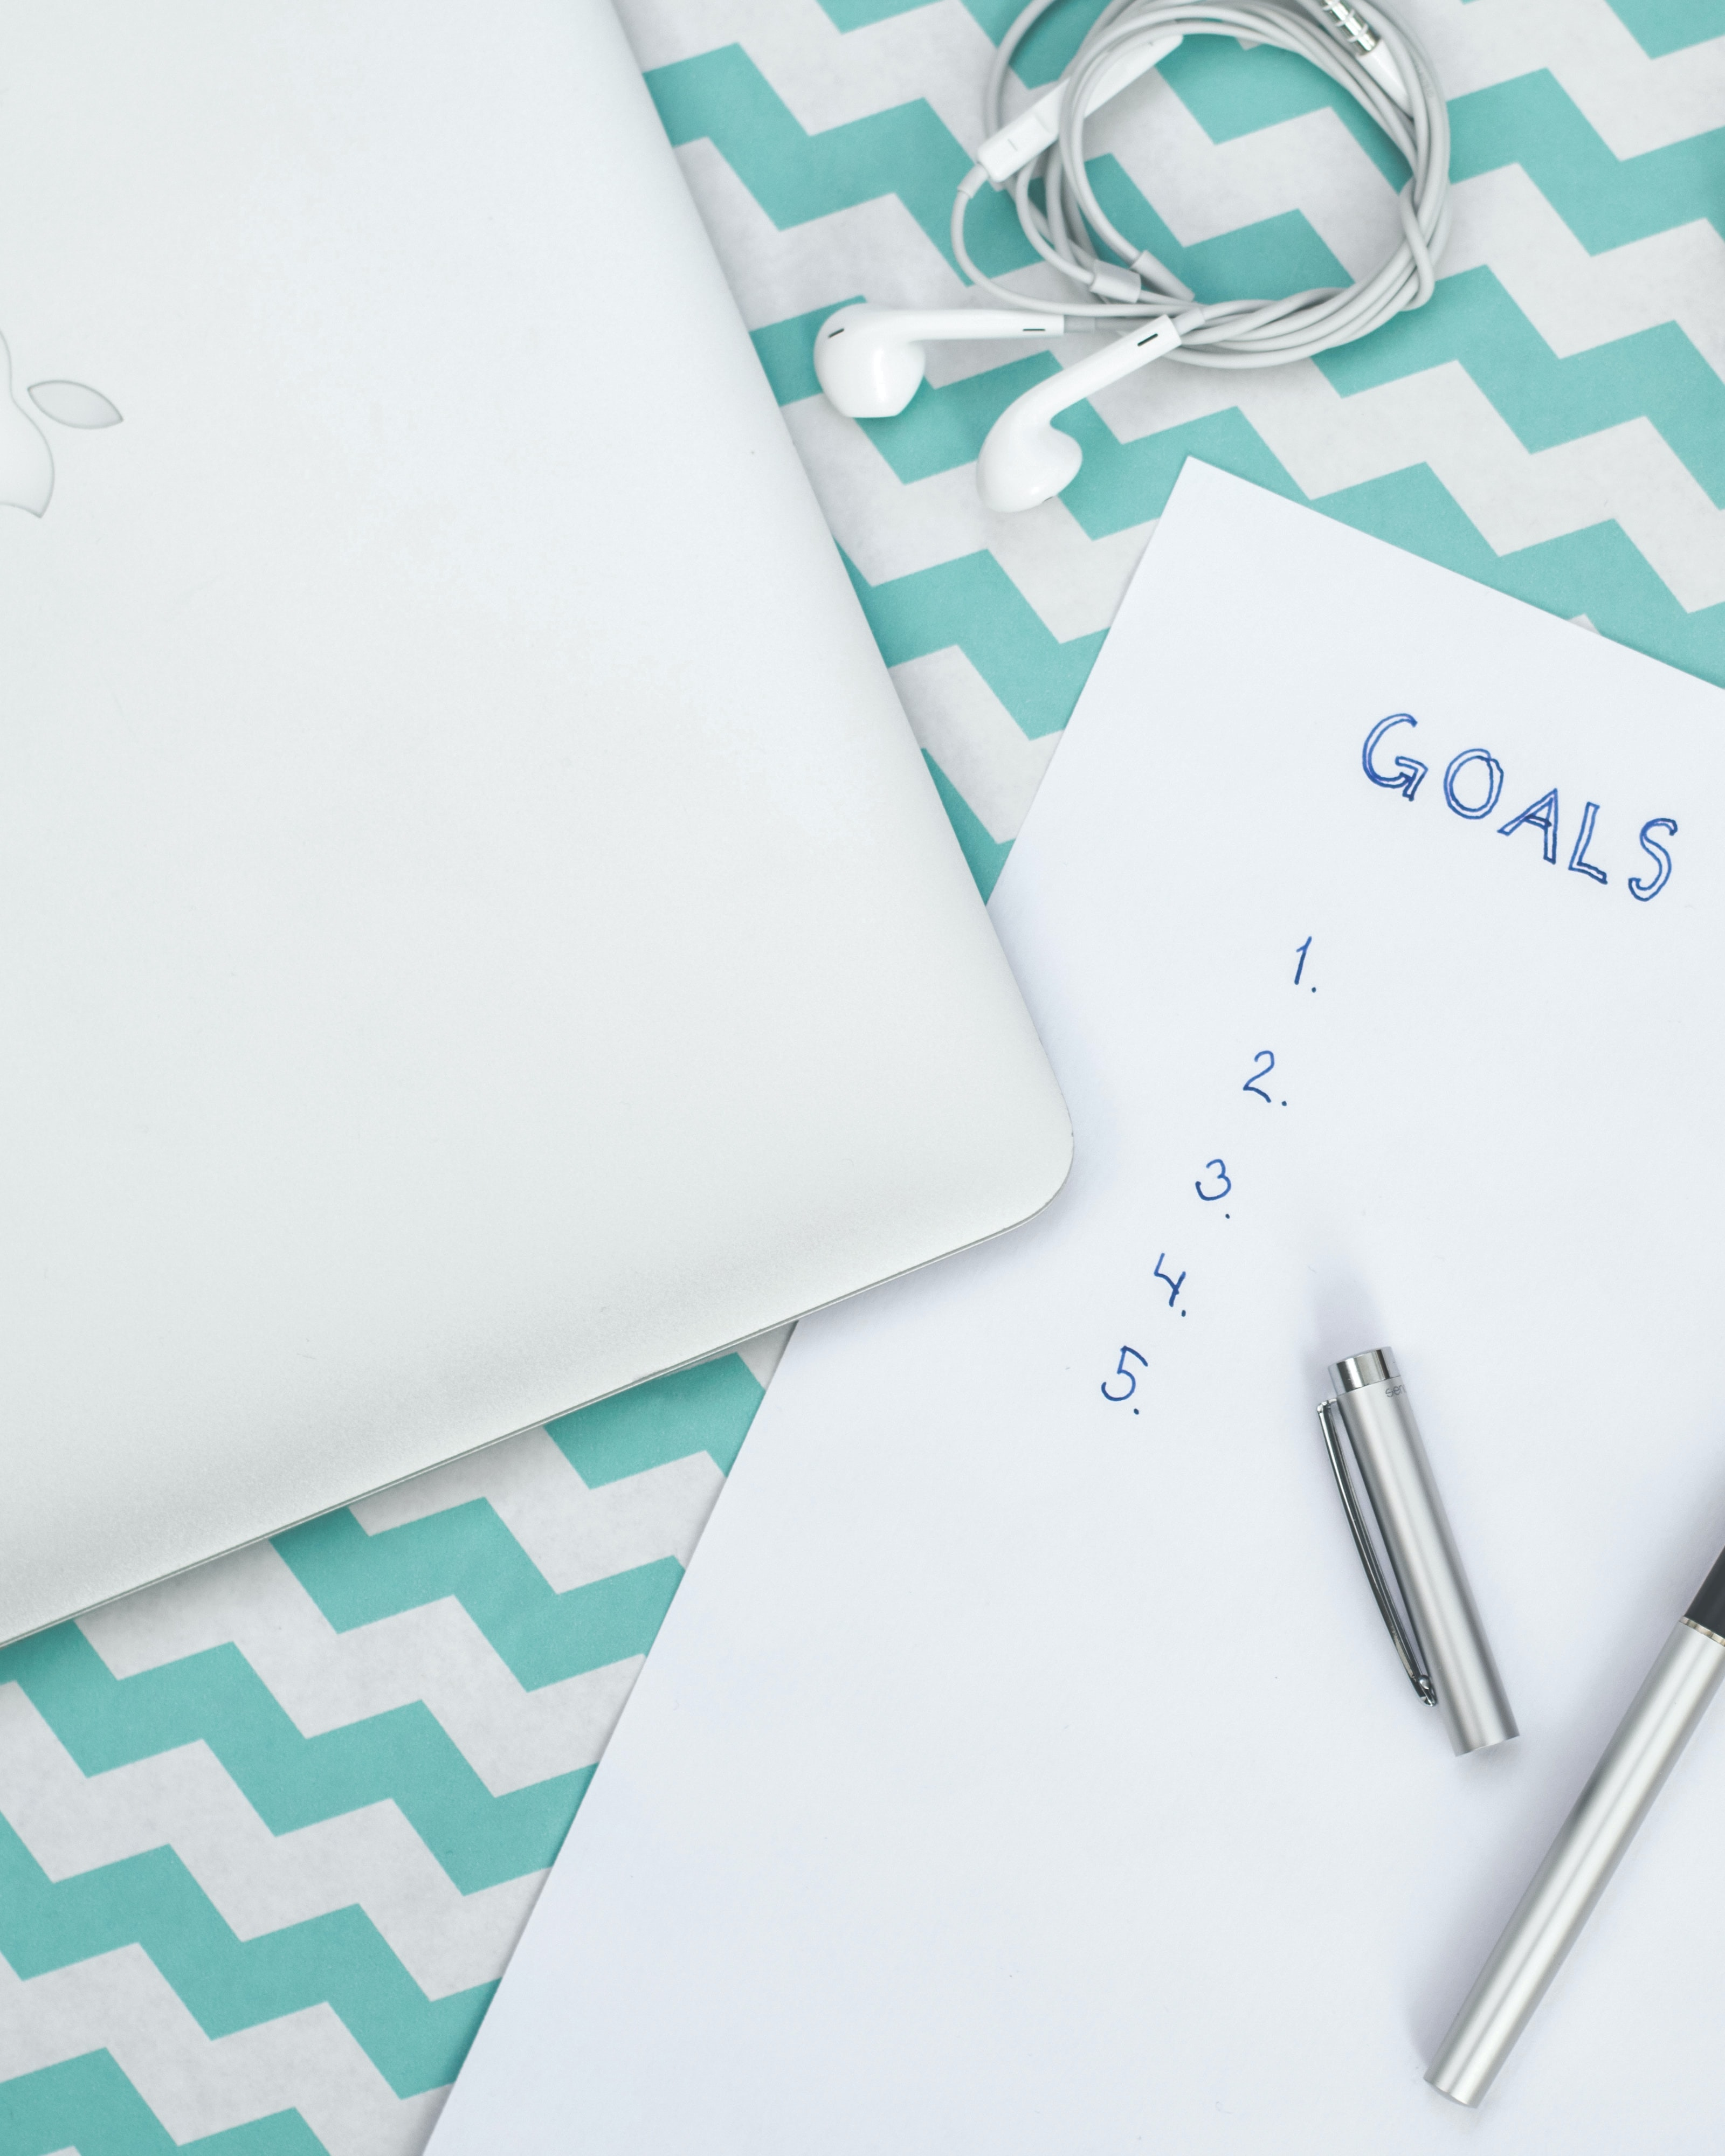 """A pen open on top of a piece of paper, where it says """"Goals,"""" and an empty numbered list."""